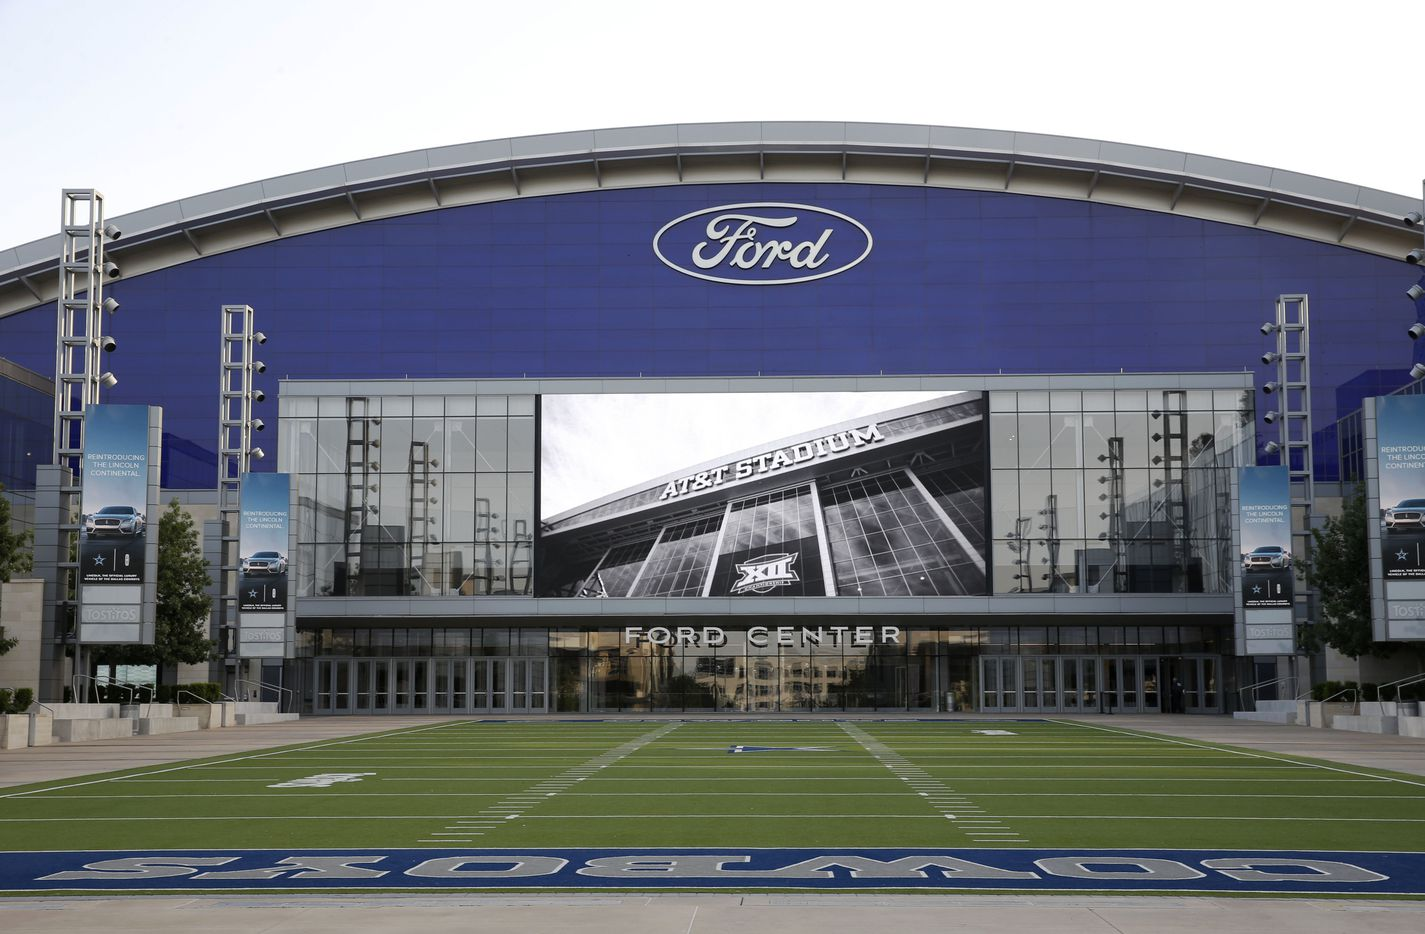 The Ford Center at The Star in Frisco on July 17, 2018. Various videos are shown on the big screen over the field. In this photo the screen shows an image of AT&T Stadium in Arlington, where the Cowboys play their games. The outdoor field is part of Tostitos Championship Plaza (foreground).